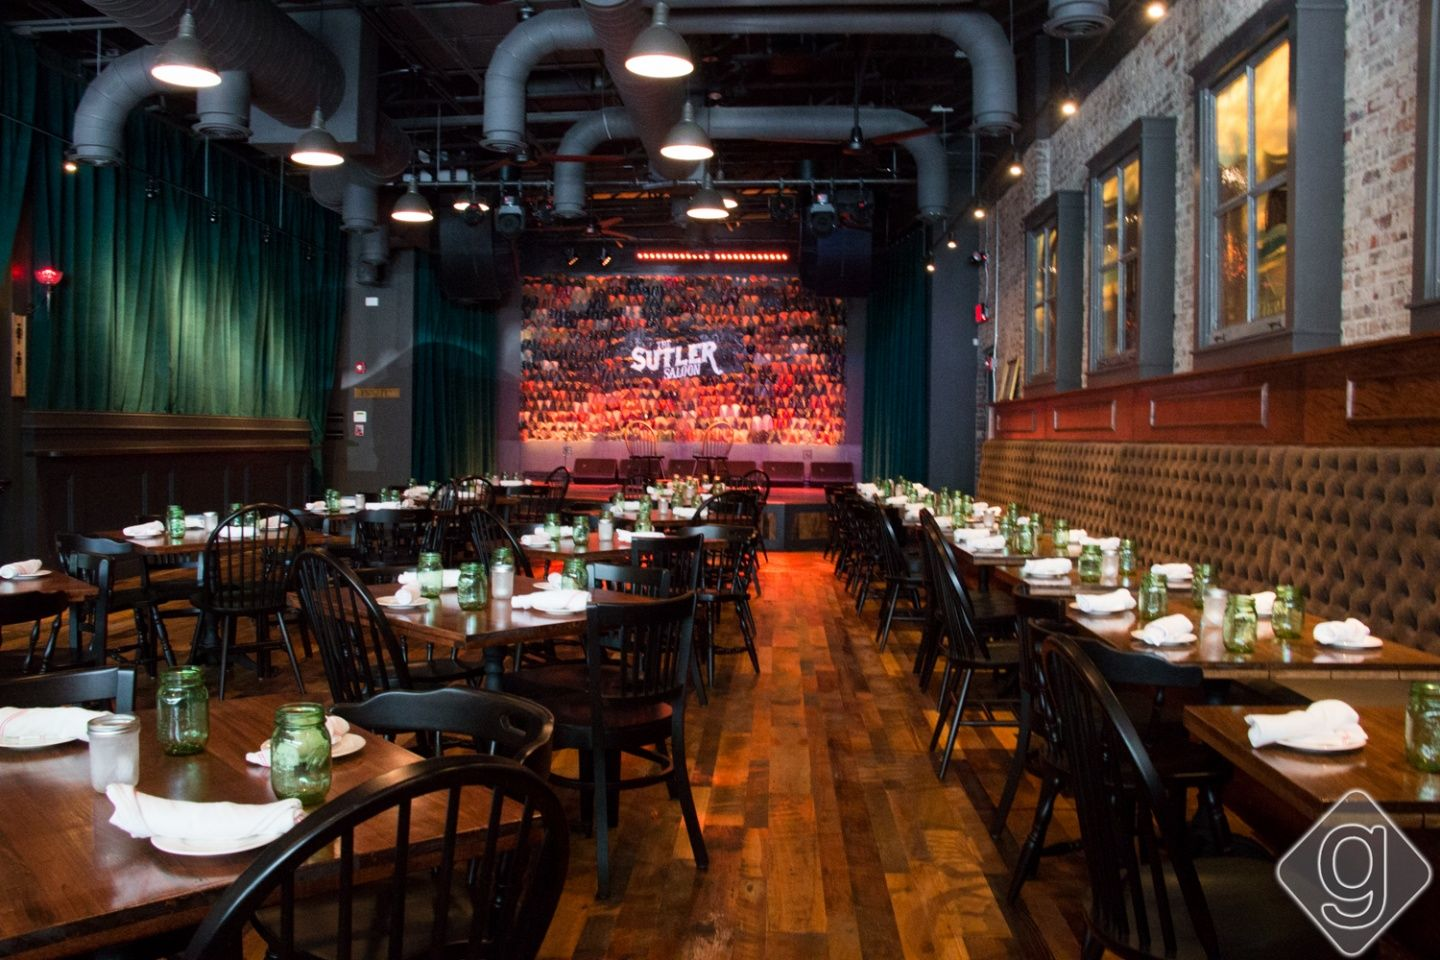 The Sutler Best Lunch Restaurants Nashville Brewery Restaurant Stepping Stones Stair